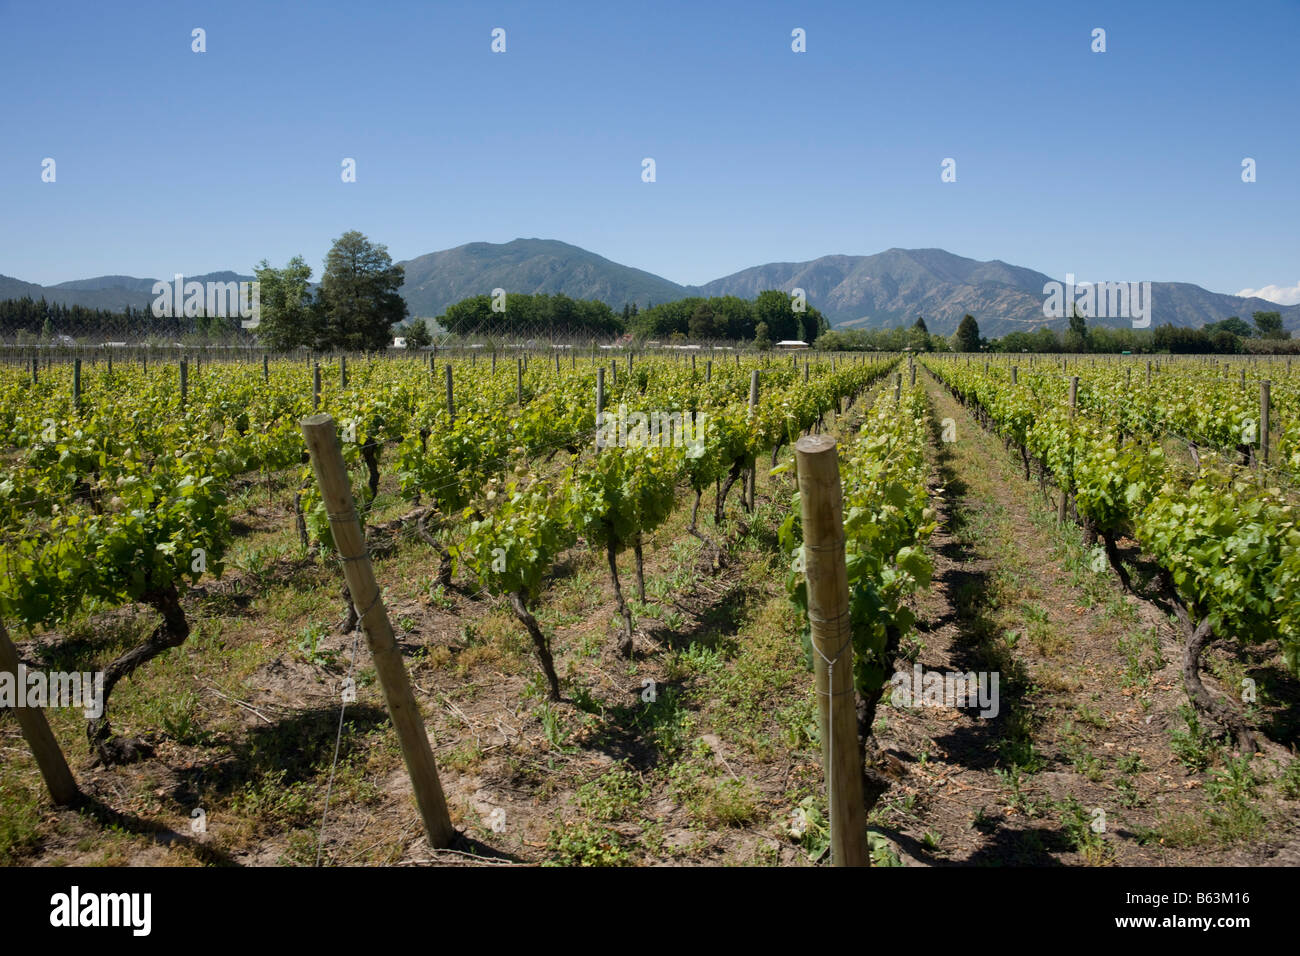 Grapevines growing in the Viu Manent Vineyard, Colchagua Valley, Chile - Stock Image